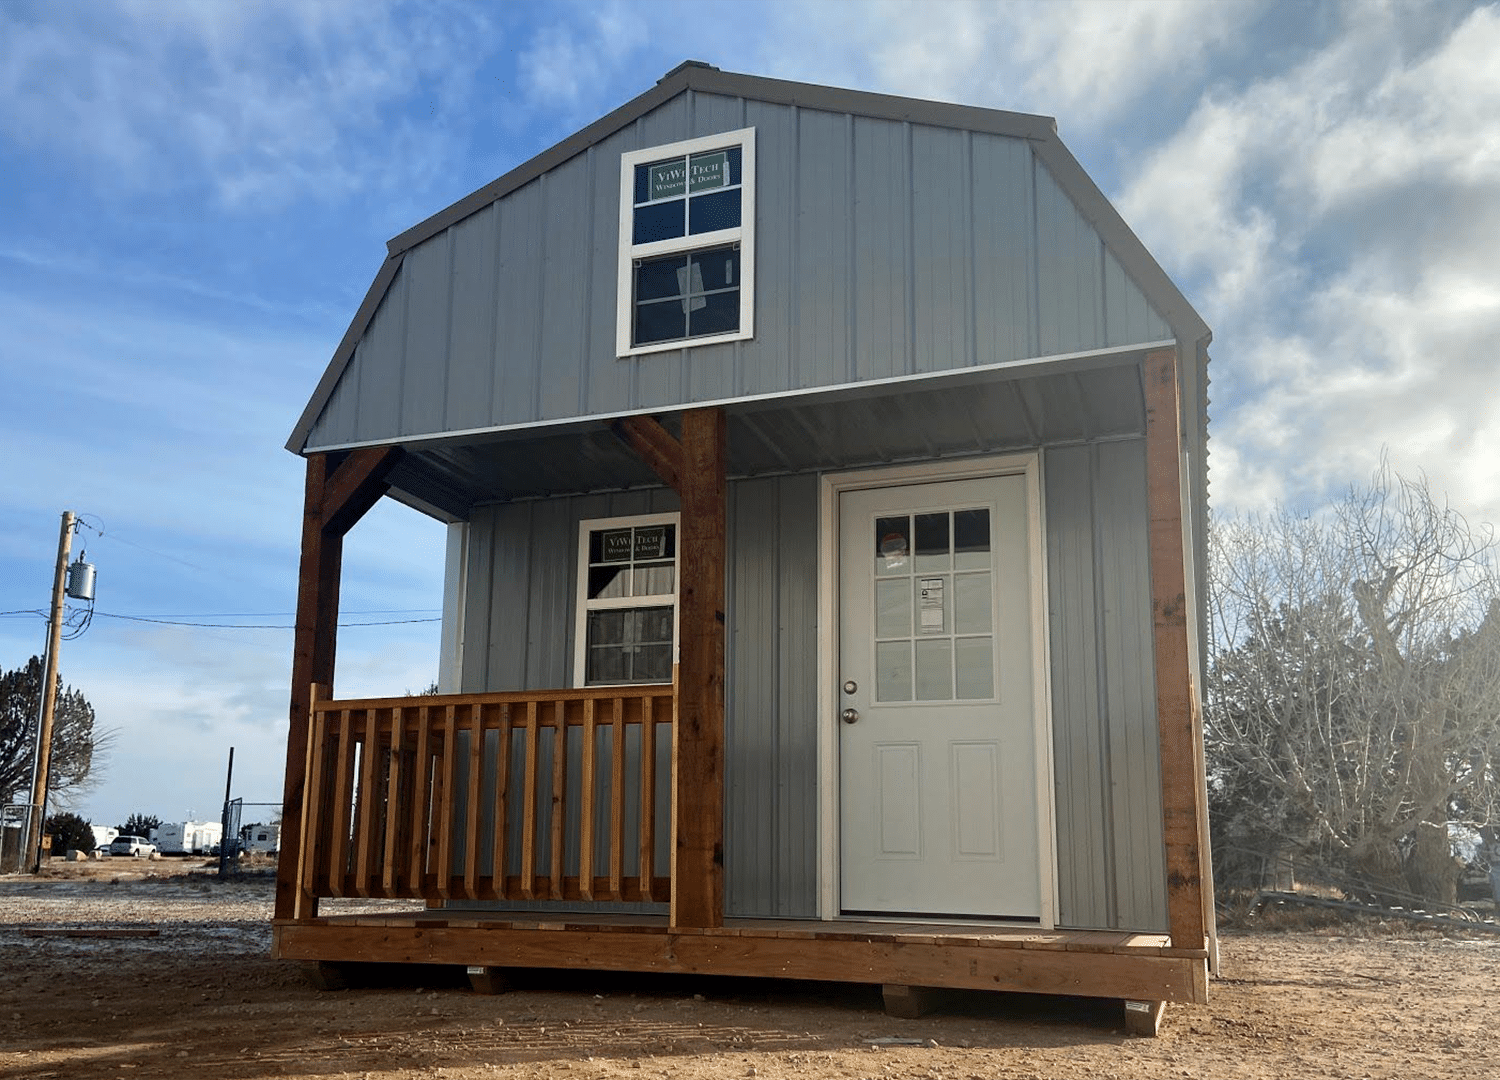 Yoder's Storage Sheds | Lofted Barn with Porch | Sheds | Portable Buildings